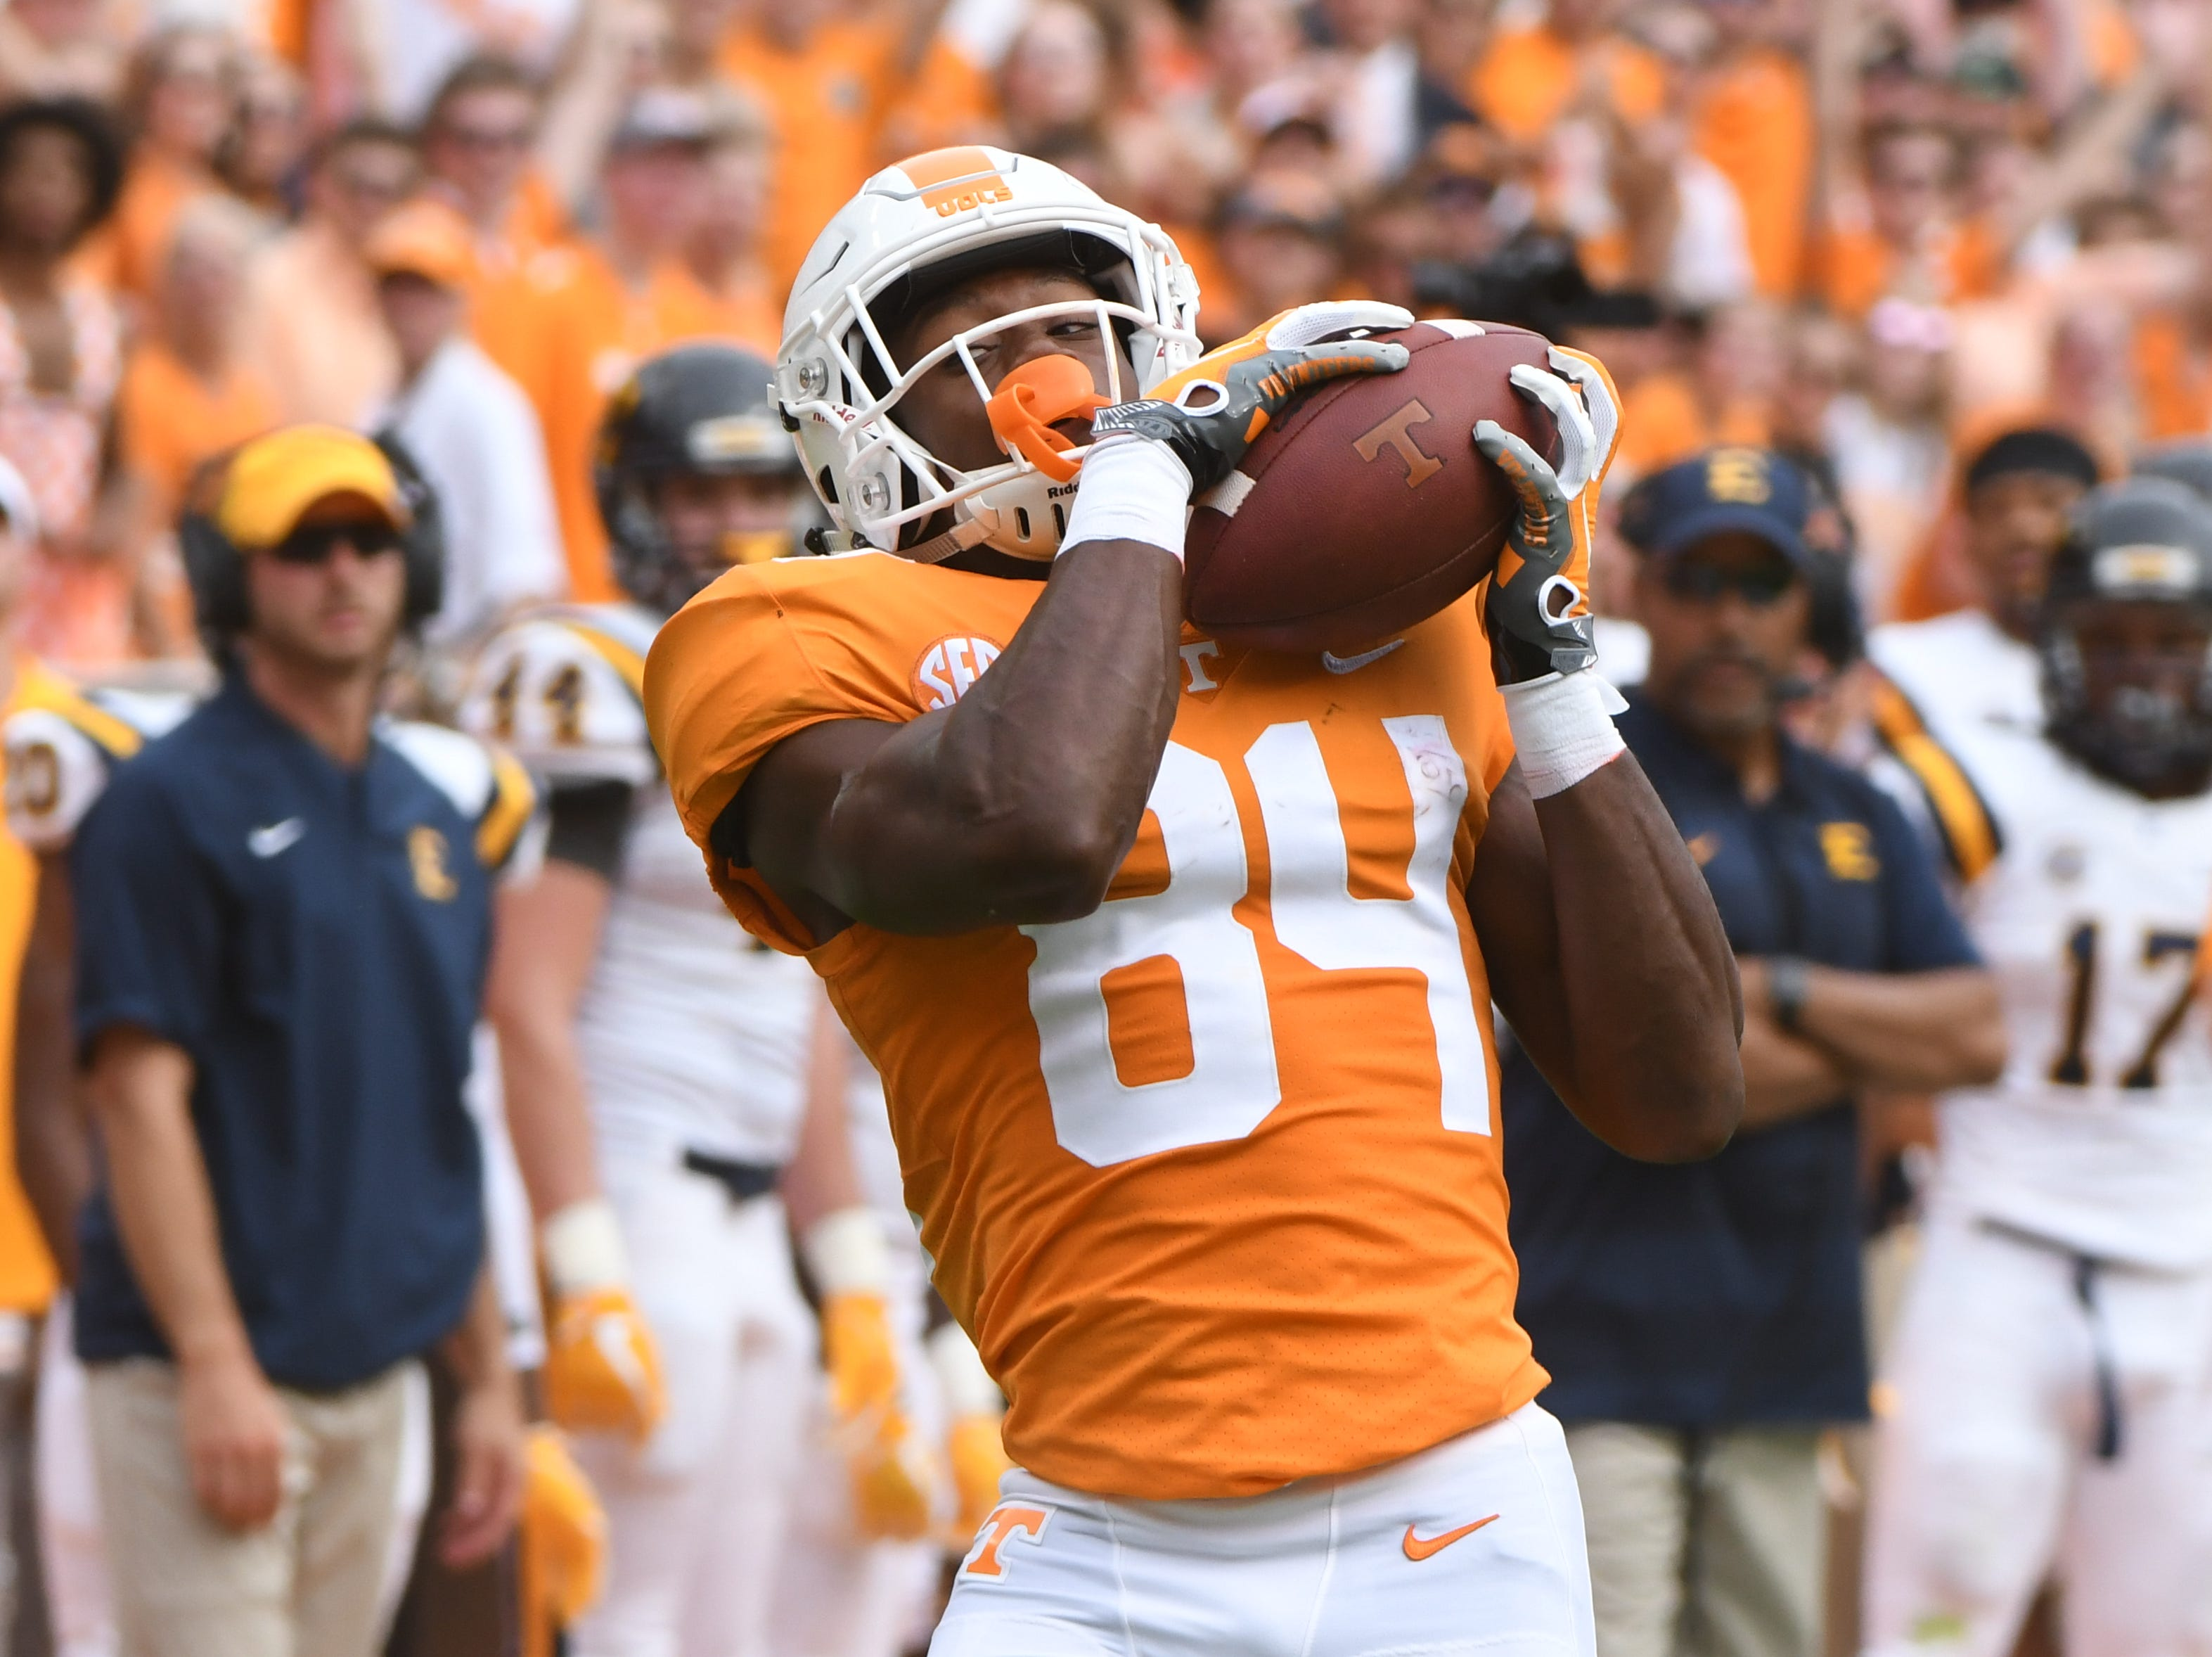 Tennessee wide receiver Josh Palmer (84) makes a catch during a game between Tennessee and ETSU at Neyland Stadium in Knoxville, Tennessee on Saturday, September 8, 2018.